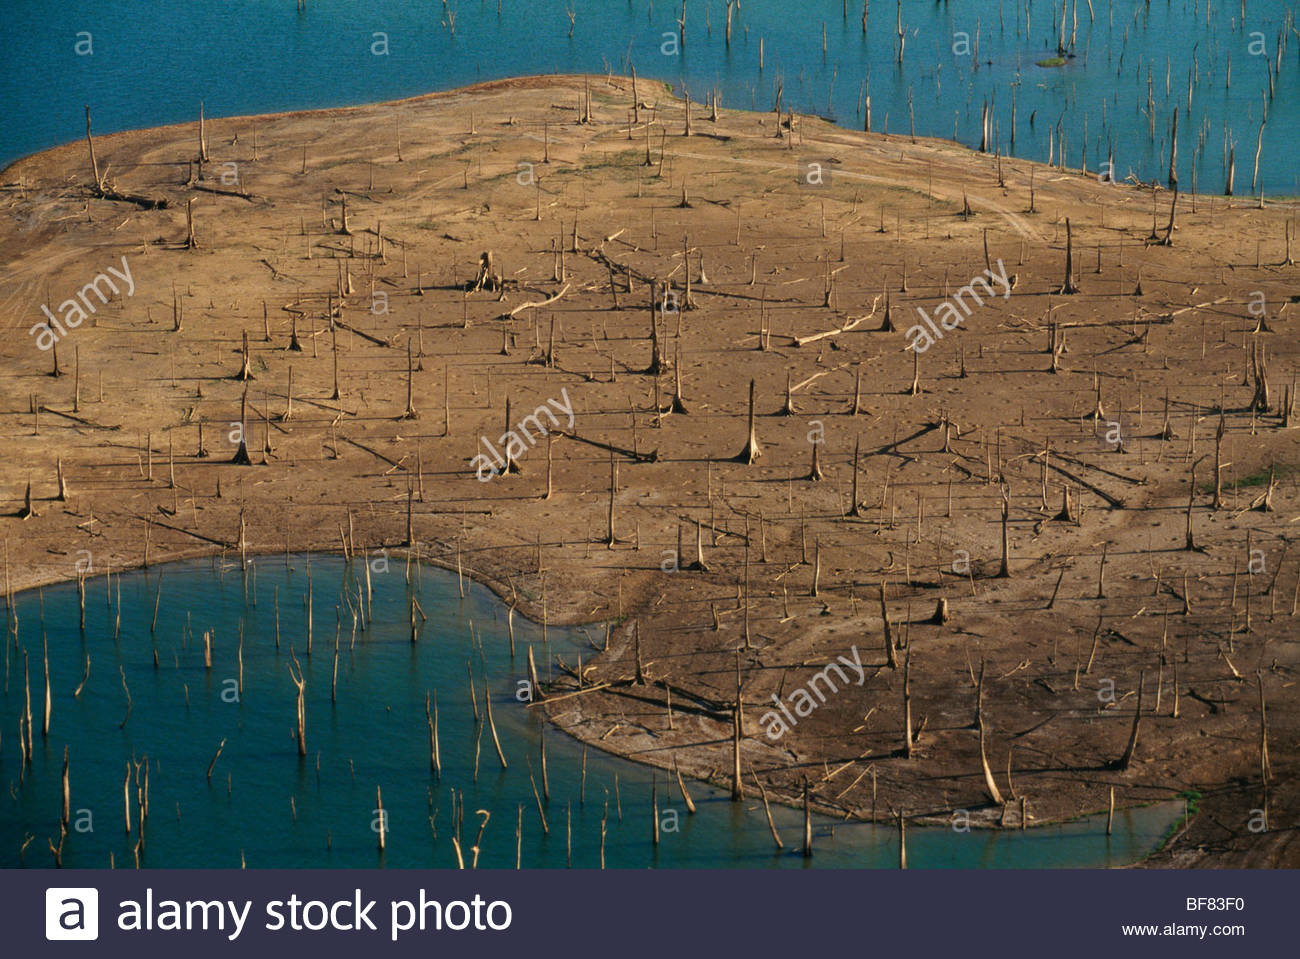 Tree stumps in Panama Canal reservoir exposed by El Nino drought (aerial), Panama - Stock Image